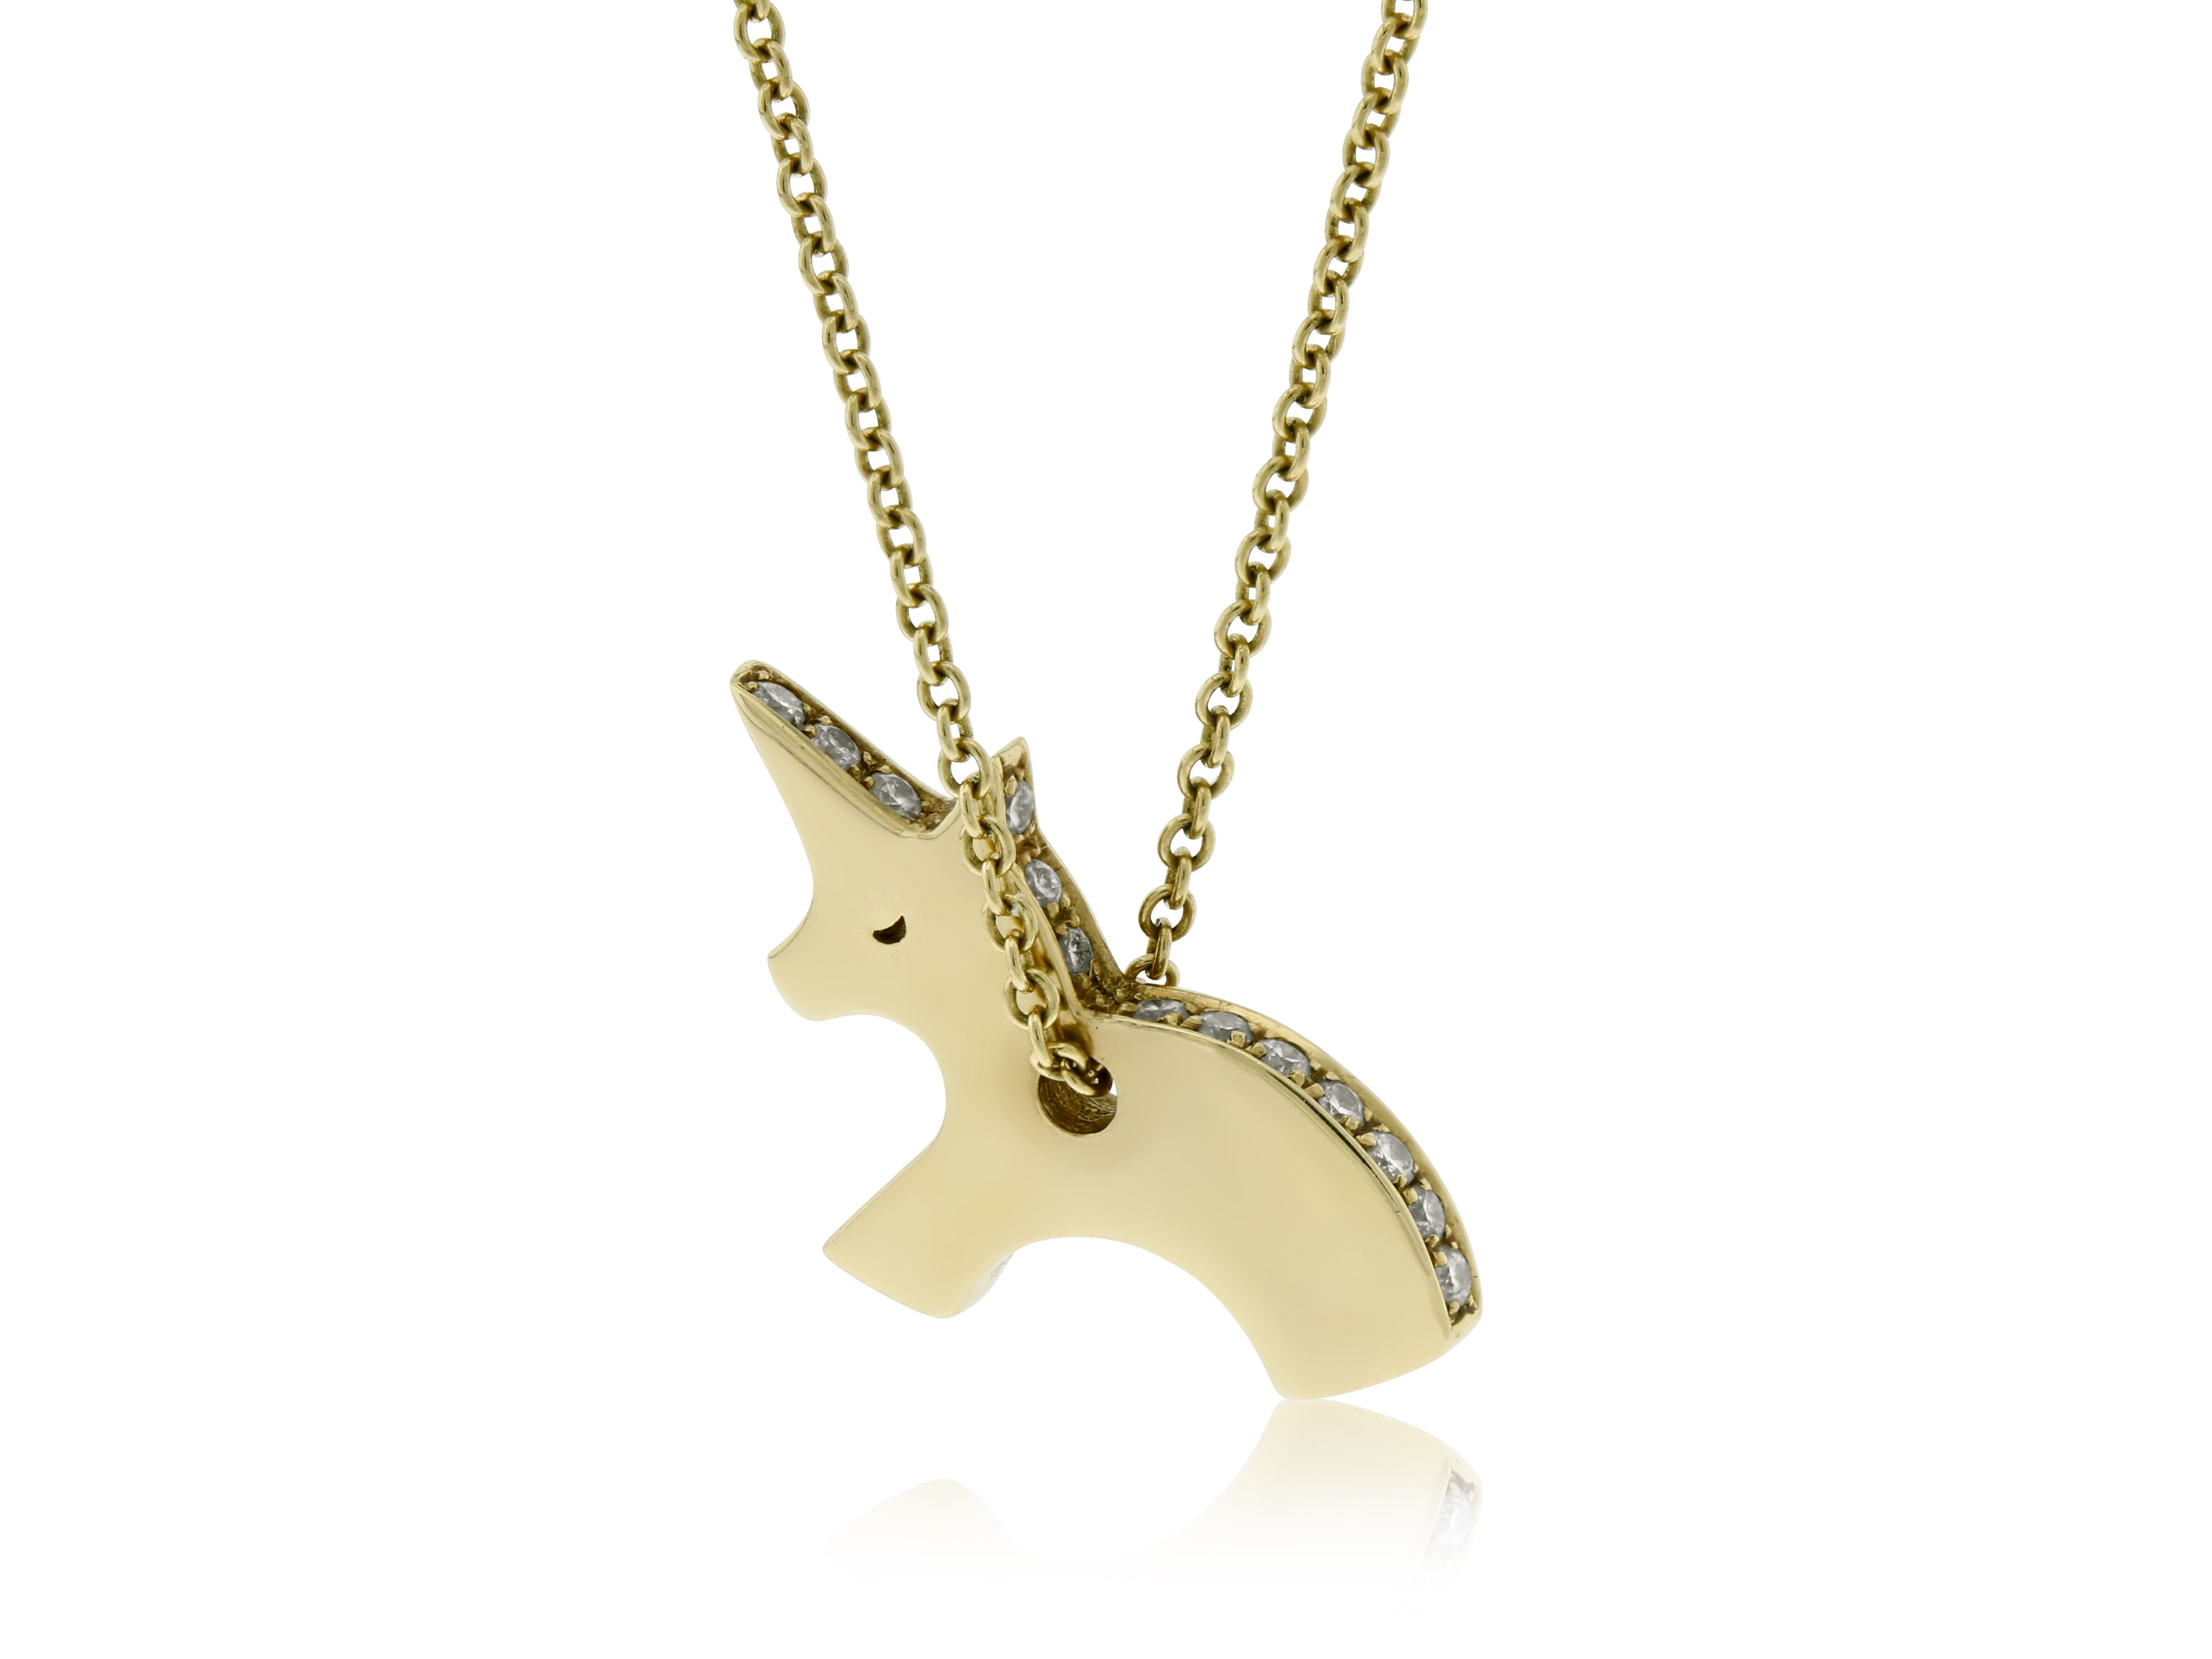 Unicorn Necklace The Solid Gold And Diamond Unicorn Necklace If